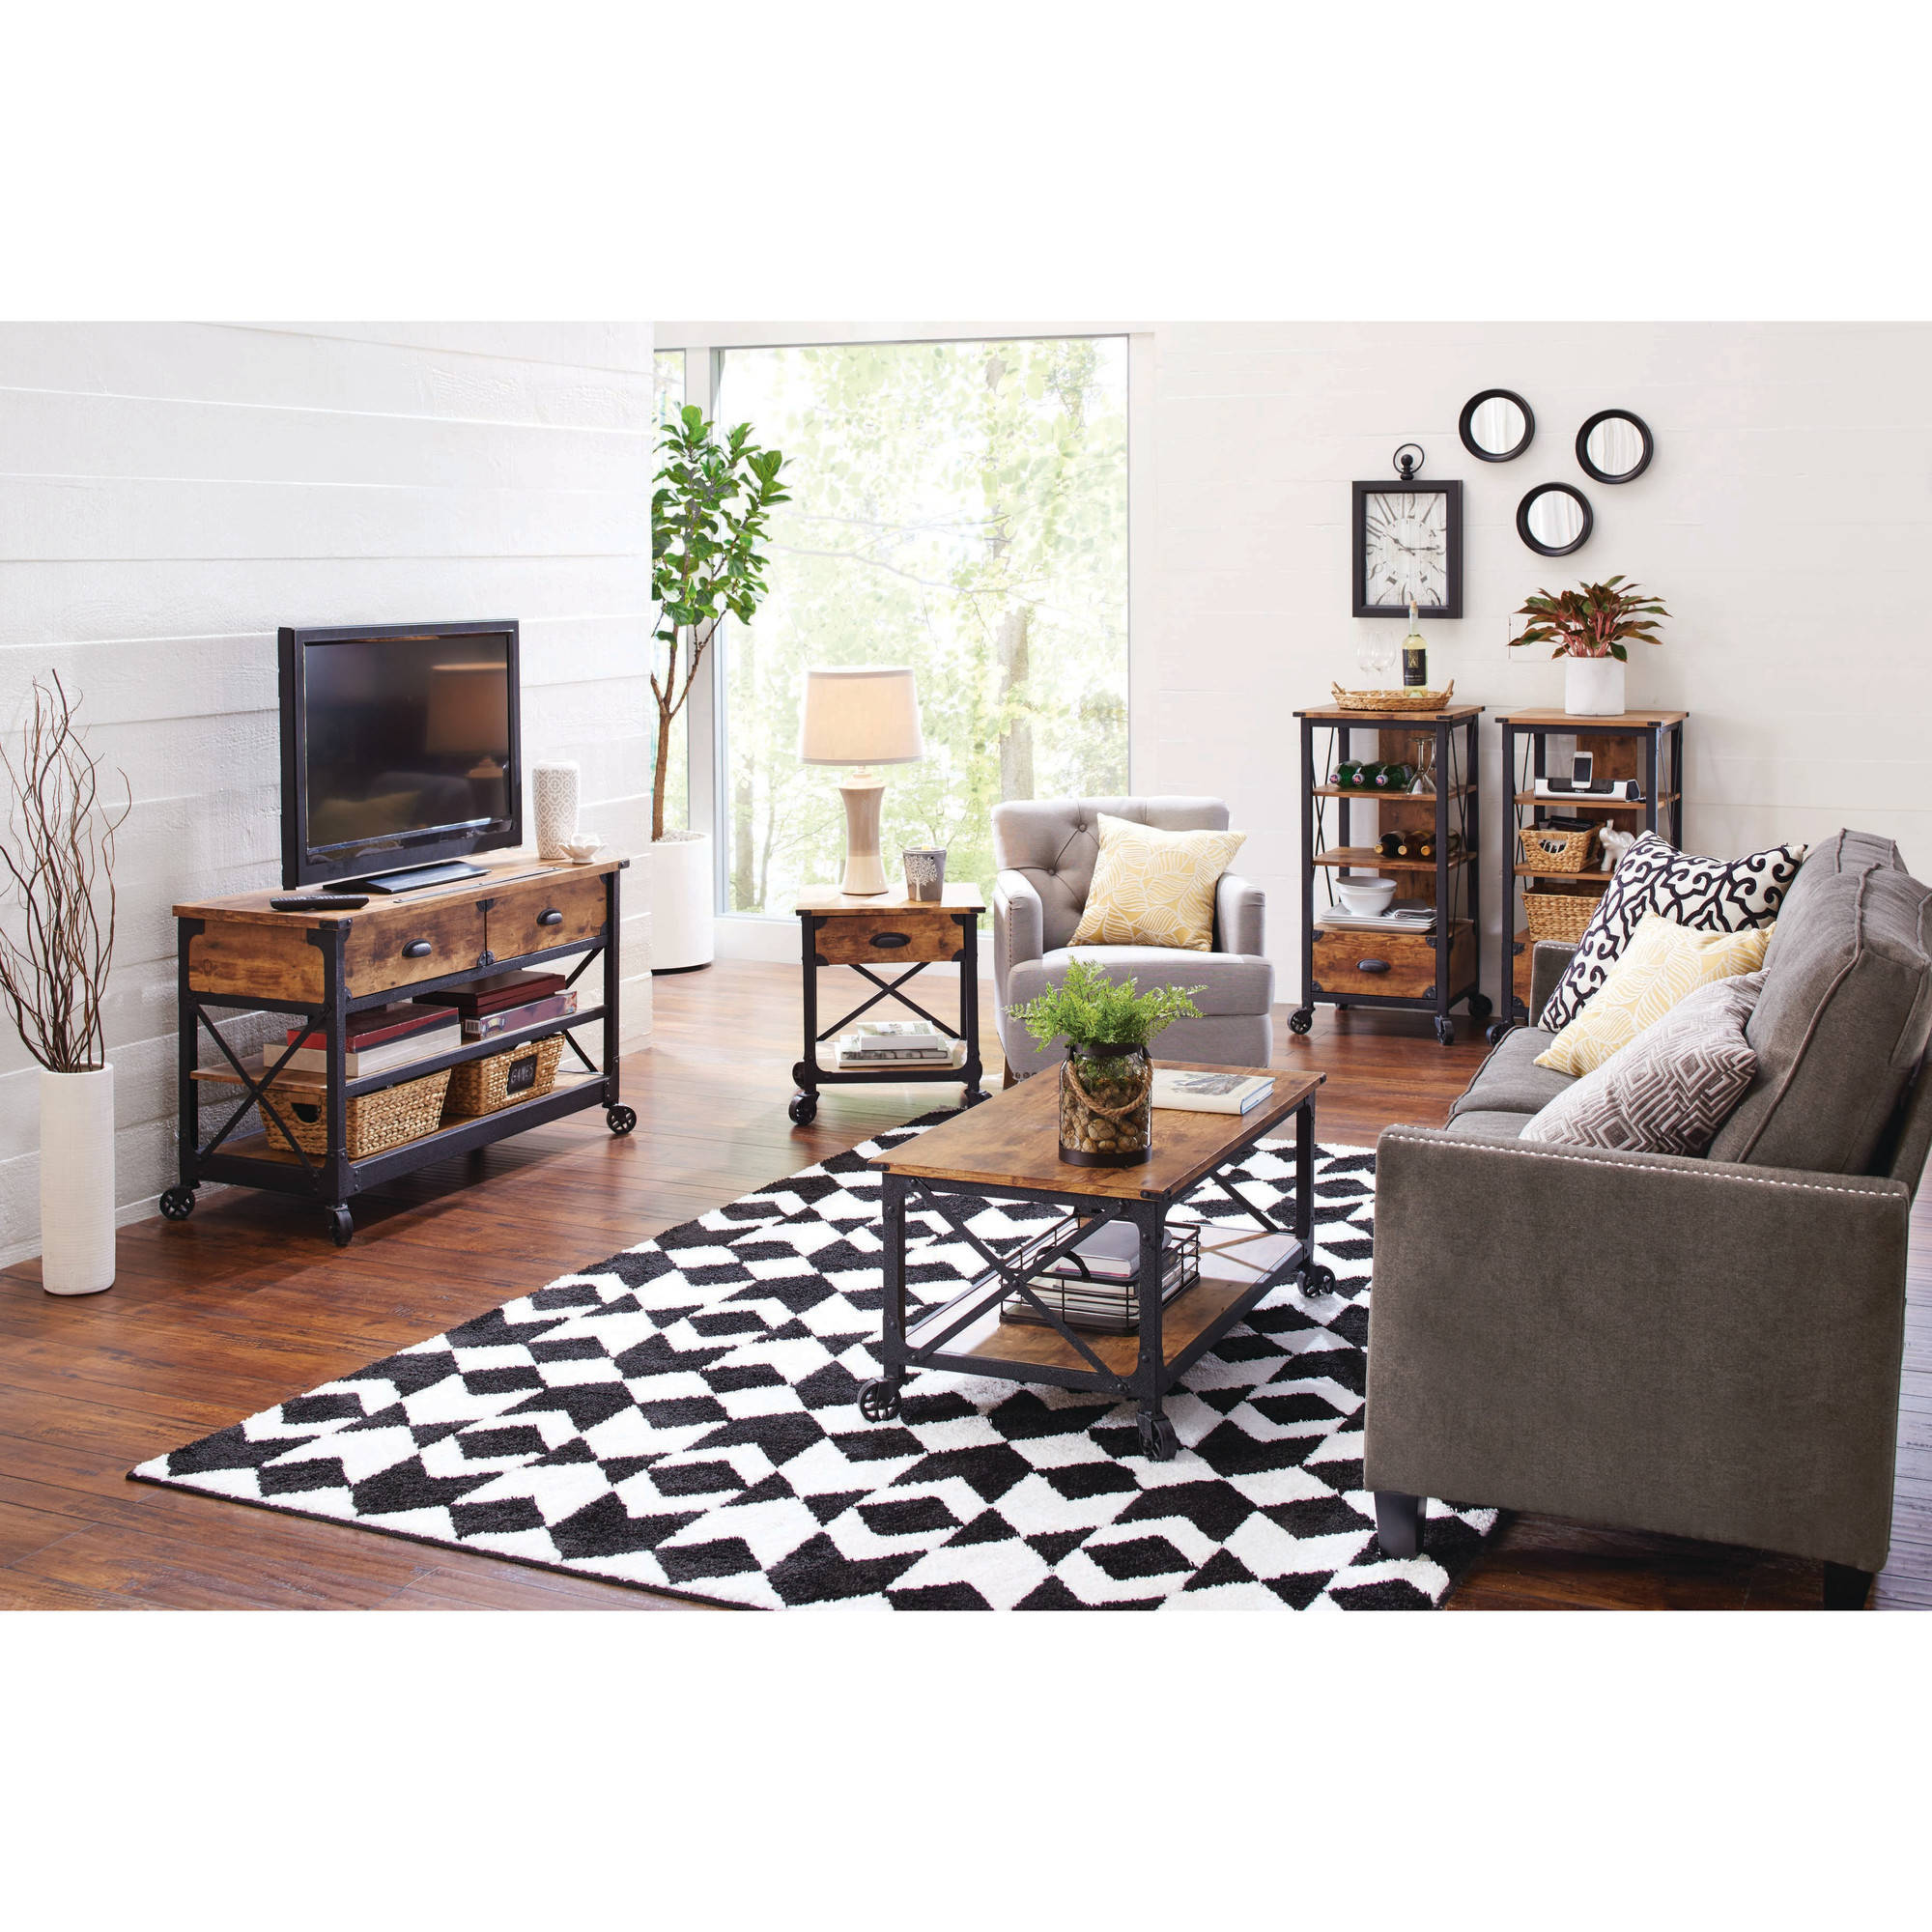 better homes and gardens living room pictures area rug sizes for rustic country set walmart com